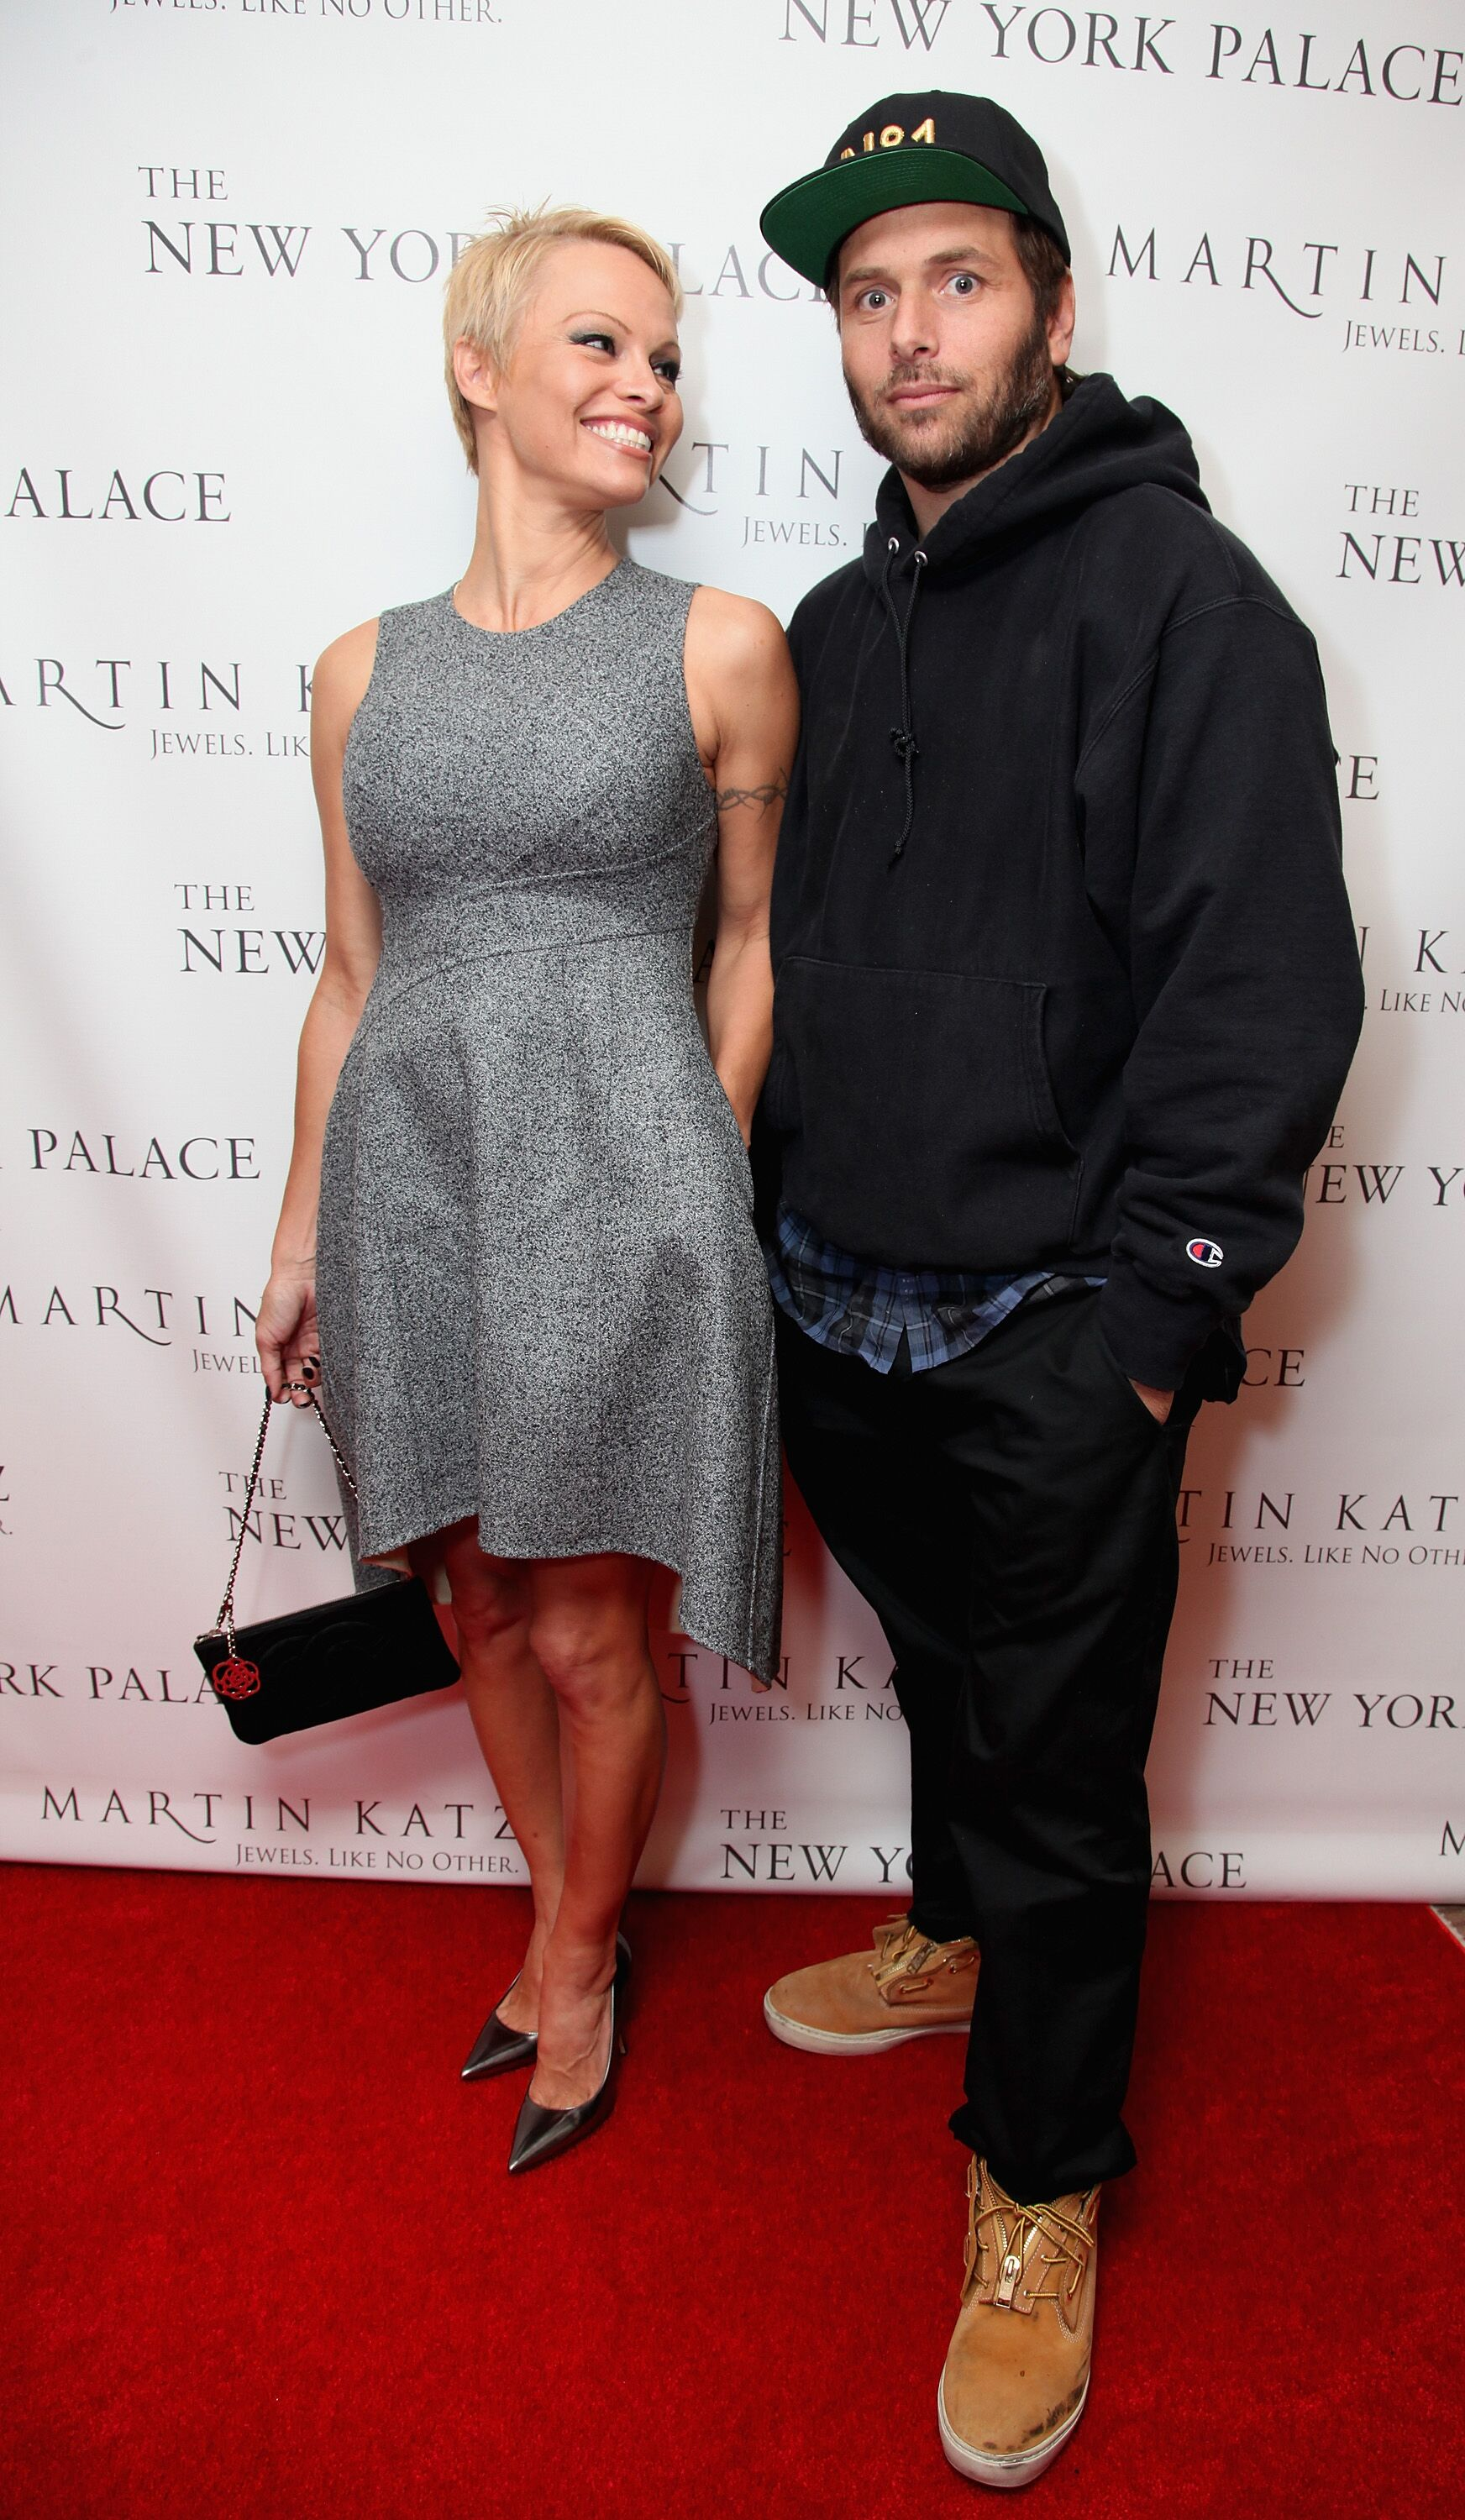 Pamela Anderson and Rick Salomon attend The Martin Katz Jewel Suite Debuts At The New York Palace Hotel. | Source: Getty Images